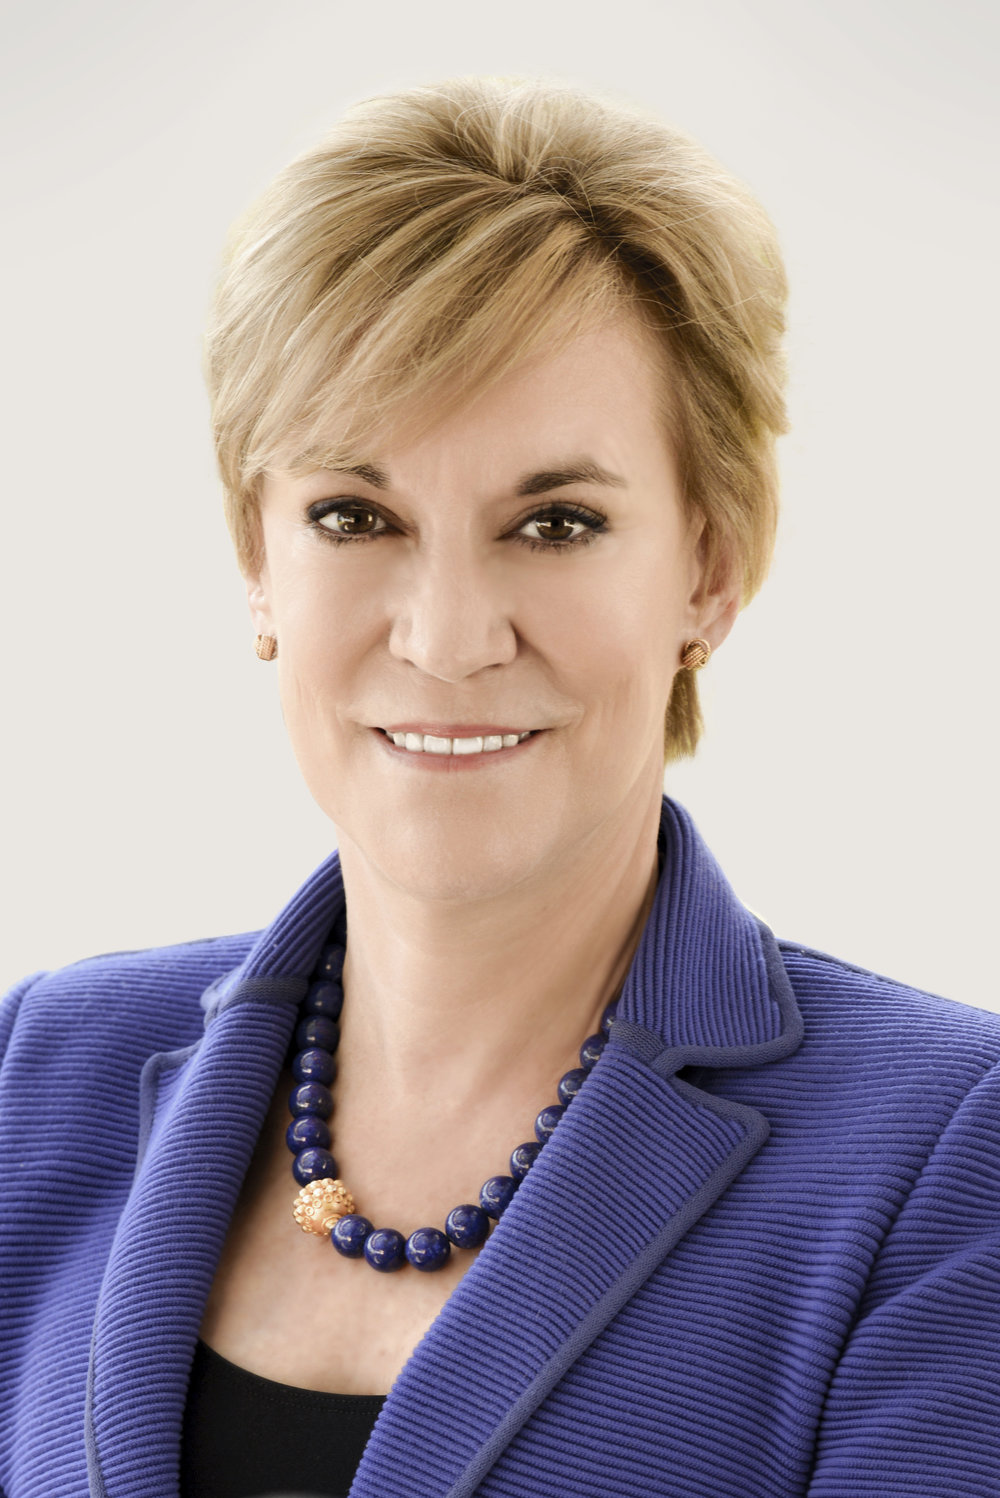 Hala Moddelmog is a business and civic leader with more than 20 years in president and CEO roles. She has also served as a corporate director for two NYSE companies and as a board member of blue-chip nonprofit organizations.